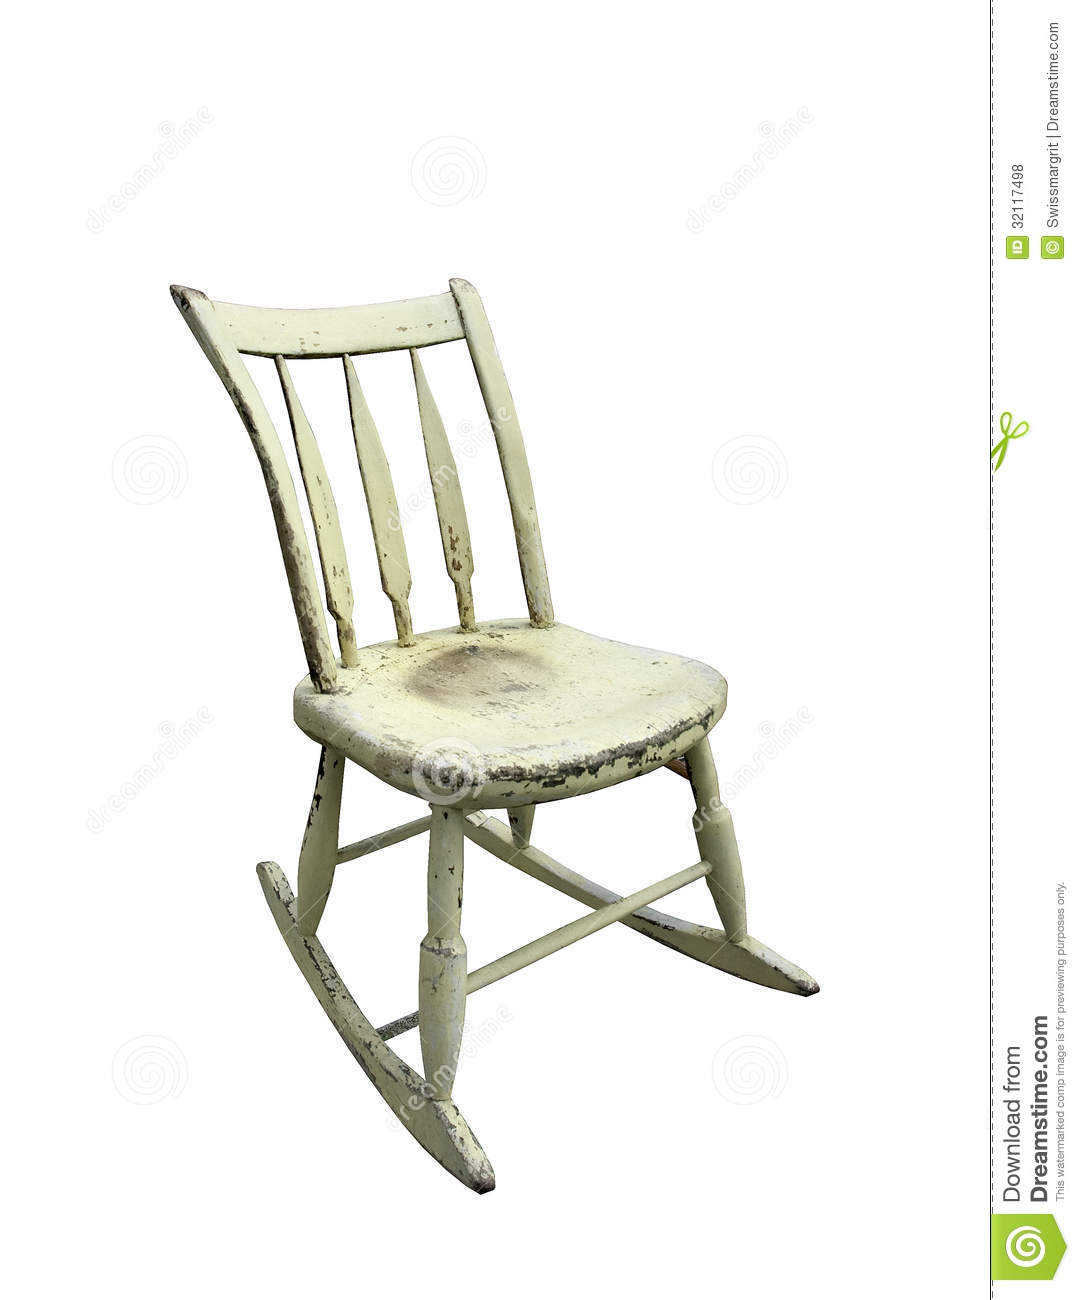 Small Rocking Chair Vintage Small Rocking Chair Royalty Free Stock Photos